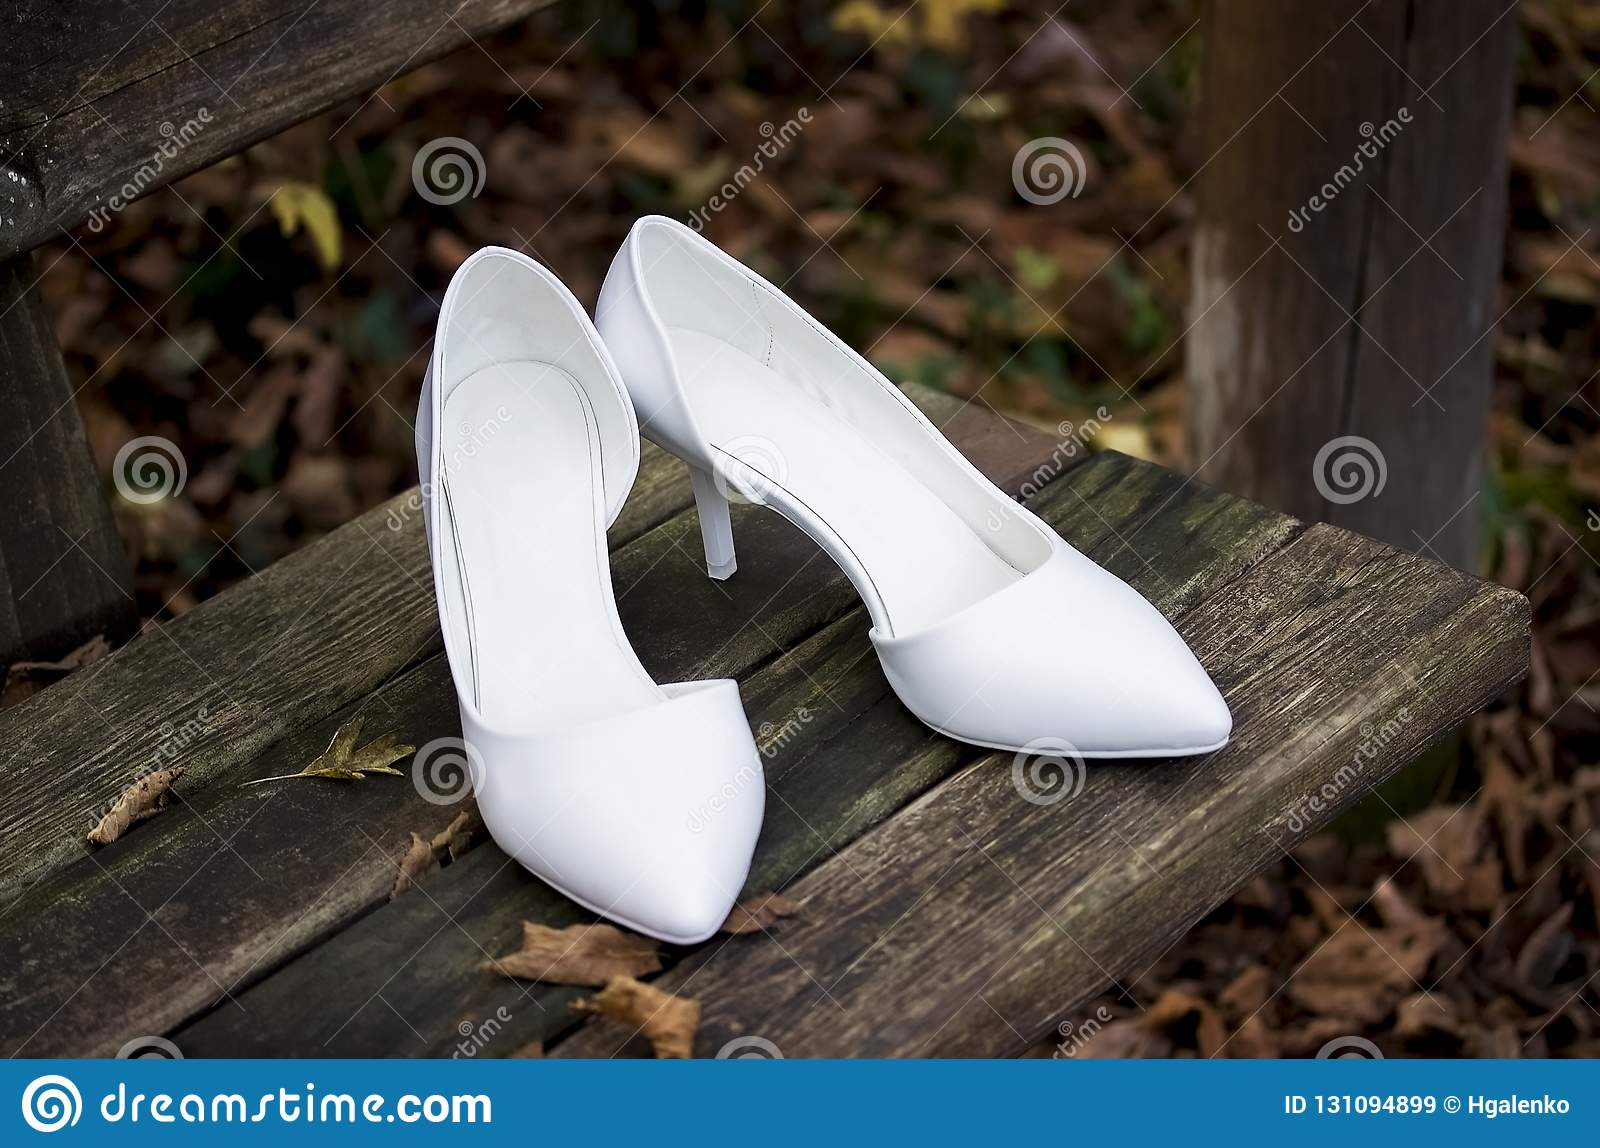 White wedding shoes with autumn foliage on wooden bench.